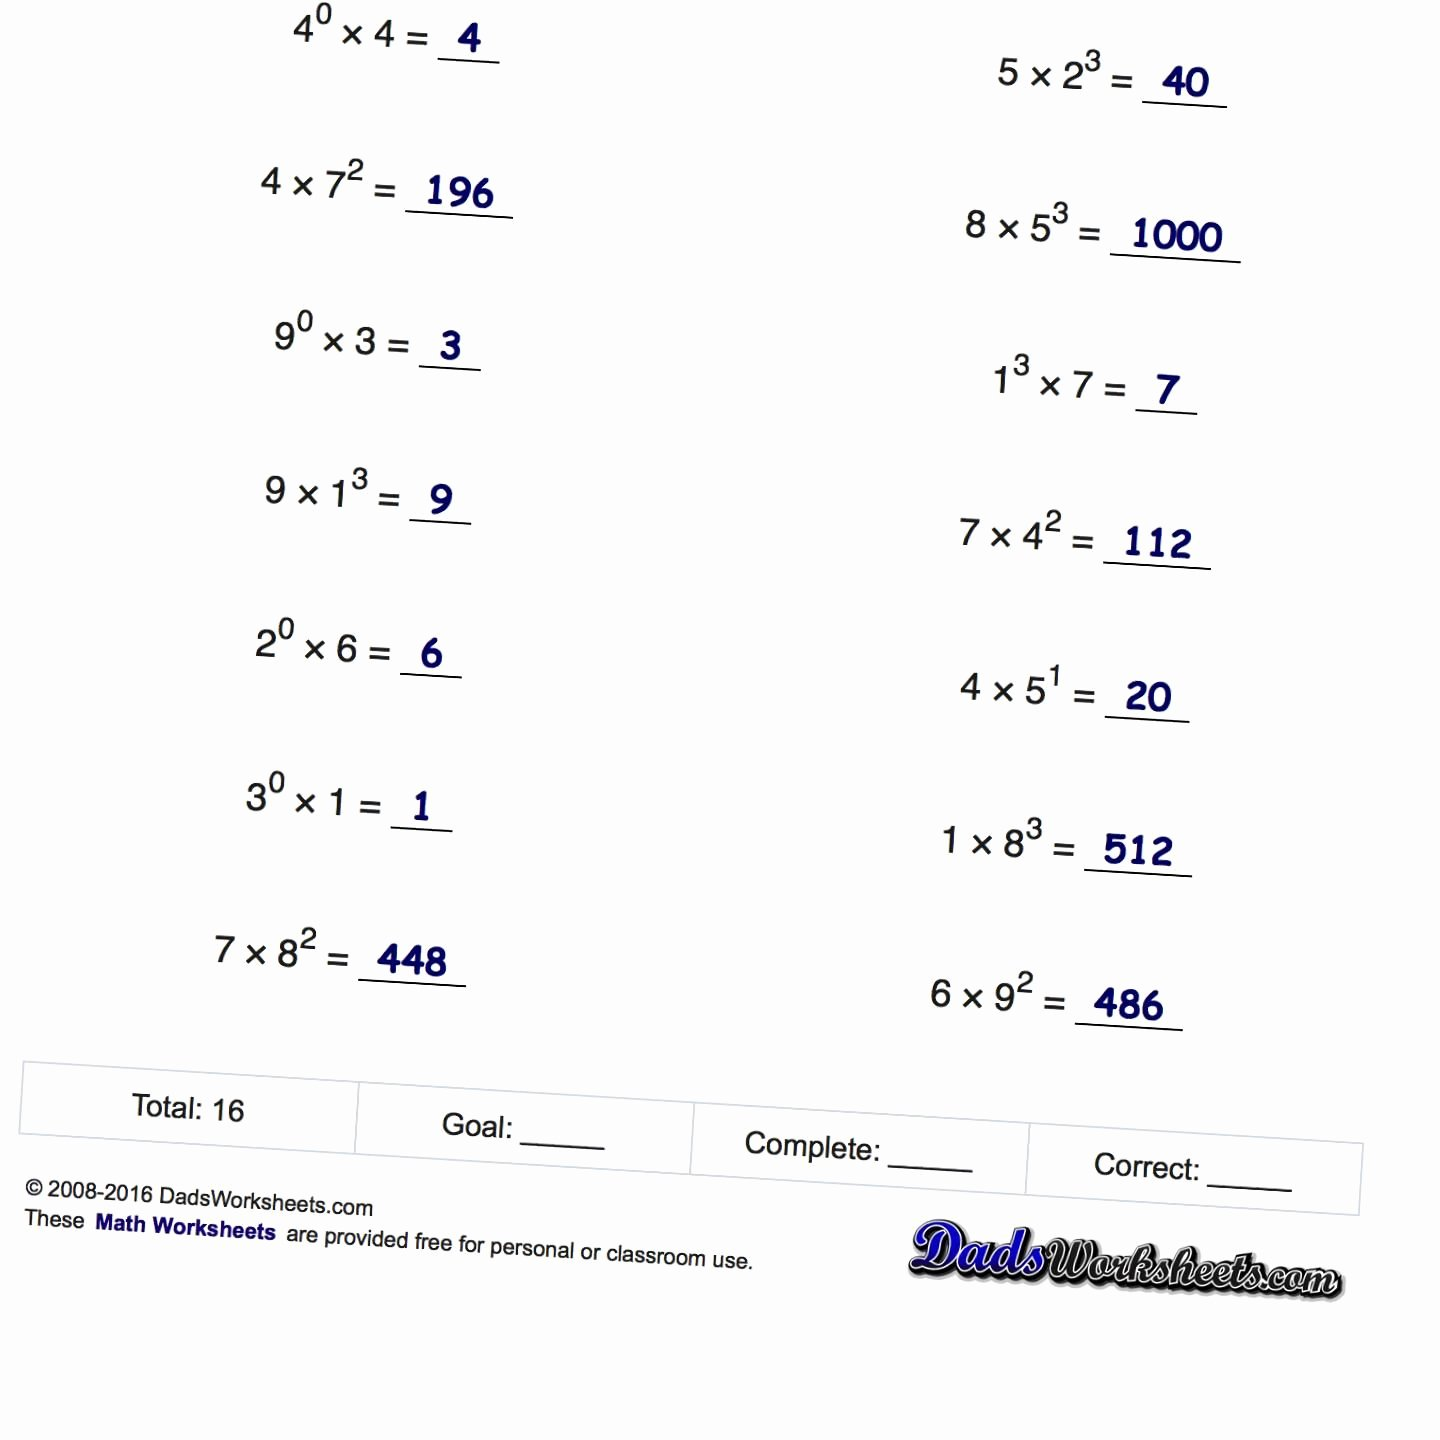 Operations with Exponents Worksheet Elegant Worksheets order Operations Worksheets with Exponents